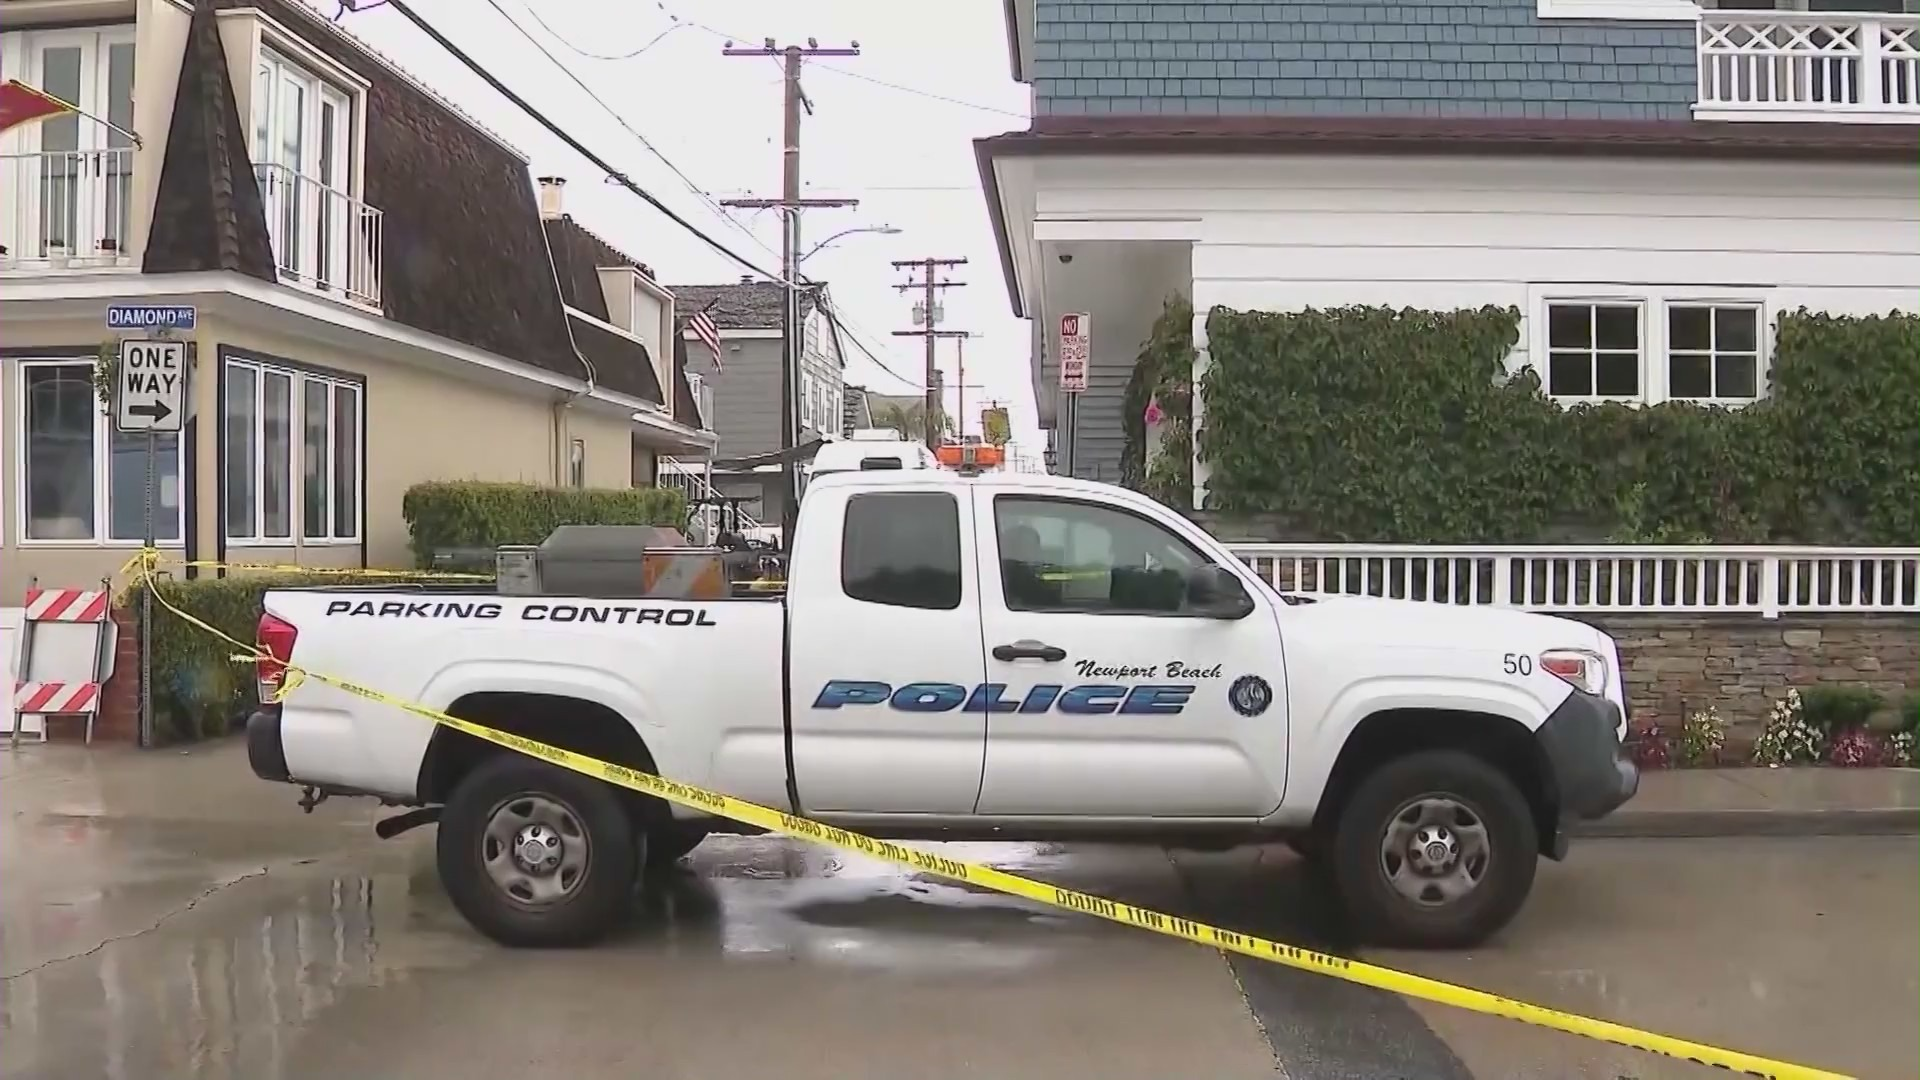 Newport Beach Police Department officers are investigating after three people were found dead in a back apartment unit on Balboa Island on Oct. 26, 2021. (KTLA)